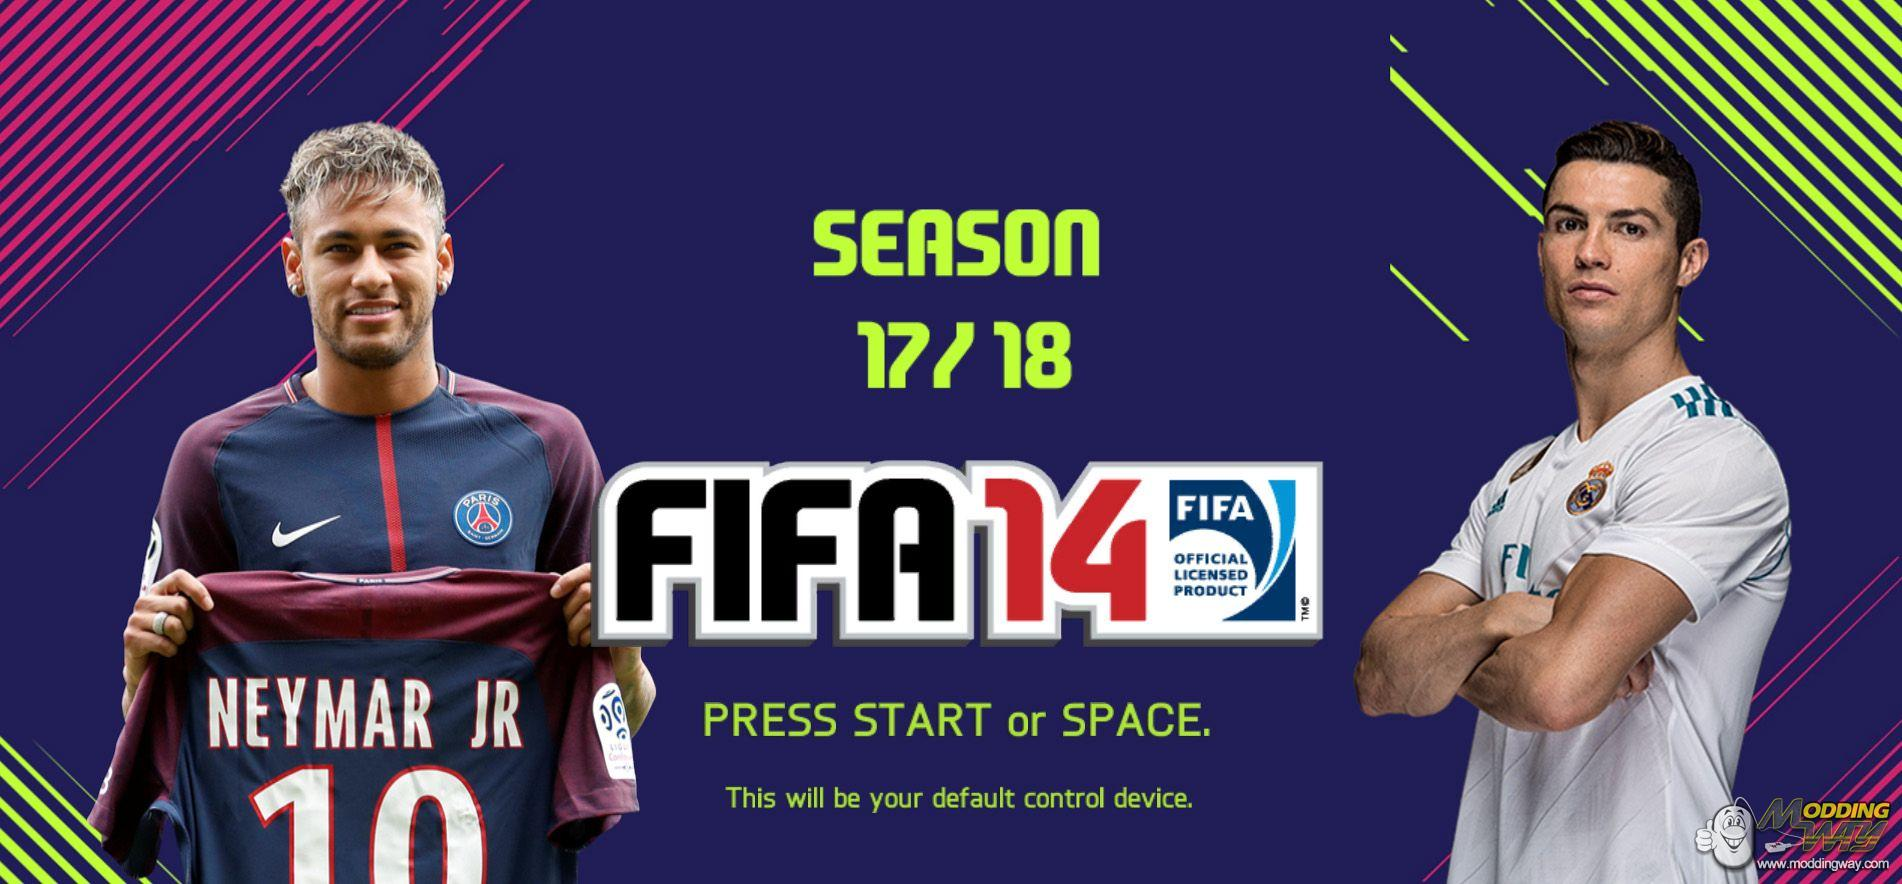 FIFA 14 ModdingWay Mod All In One 17.5.0 - FIFA 14 Video Game at ... 600c8b16f